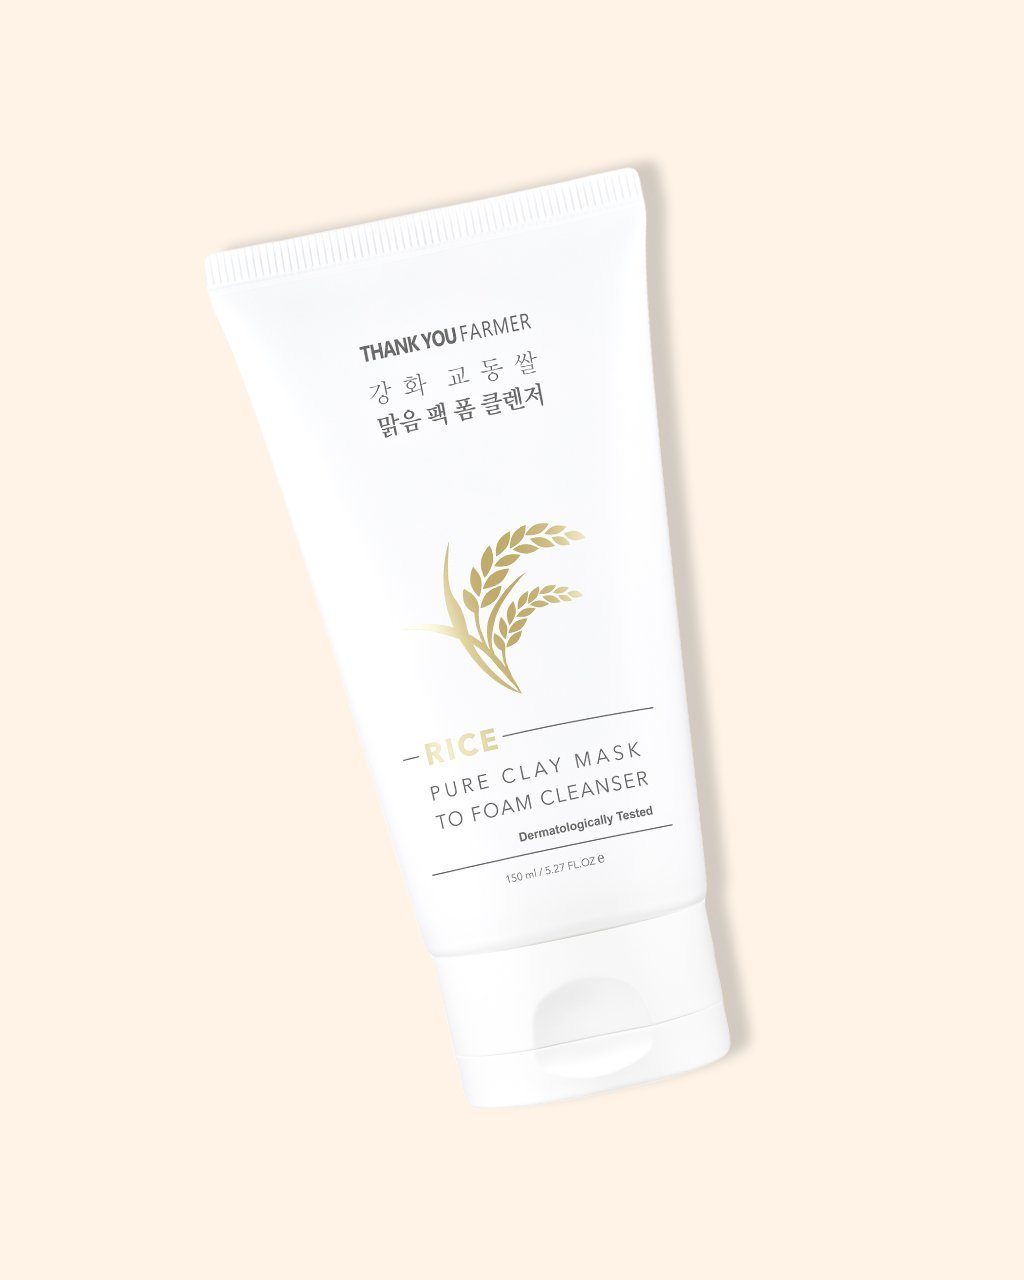 Rice Pure Clay Mask to Foam Cleanser